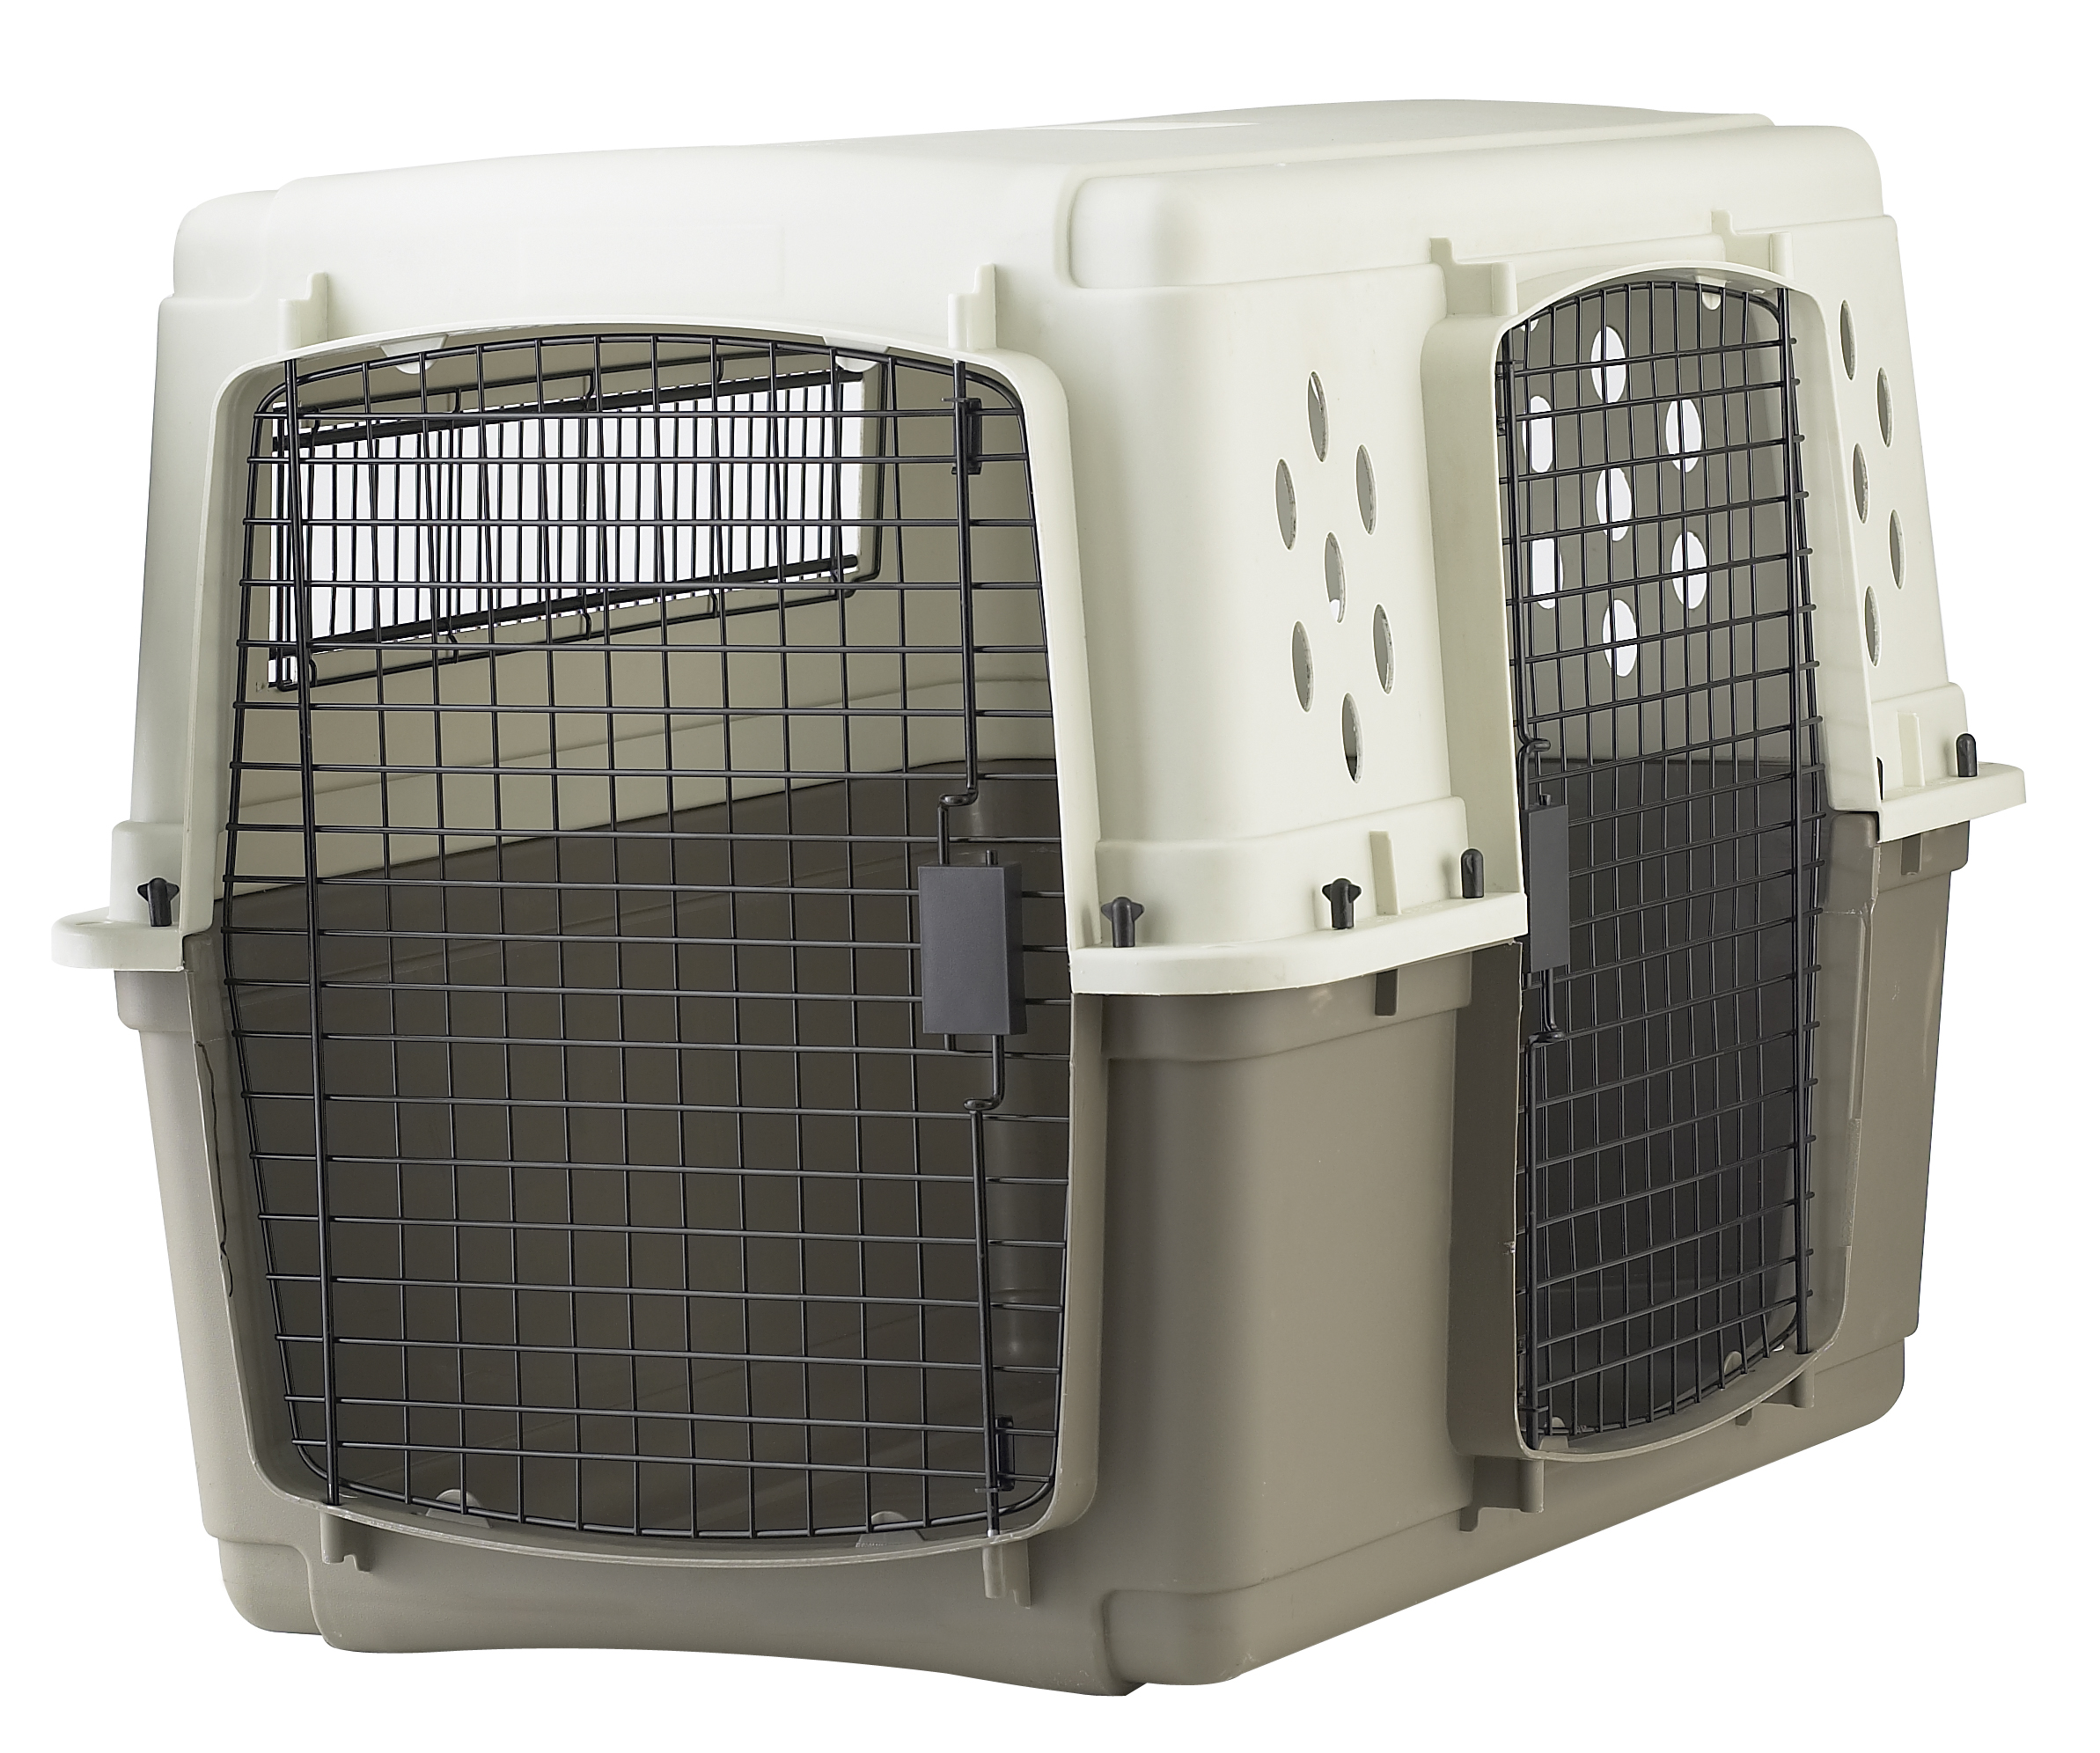 Crates, Carriers, & Kennels